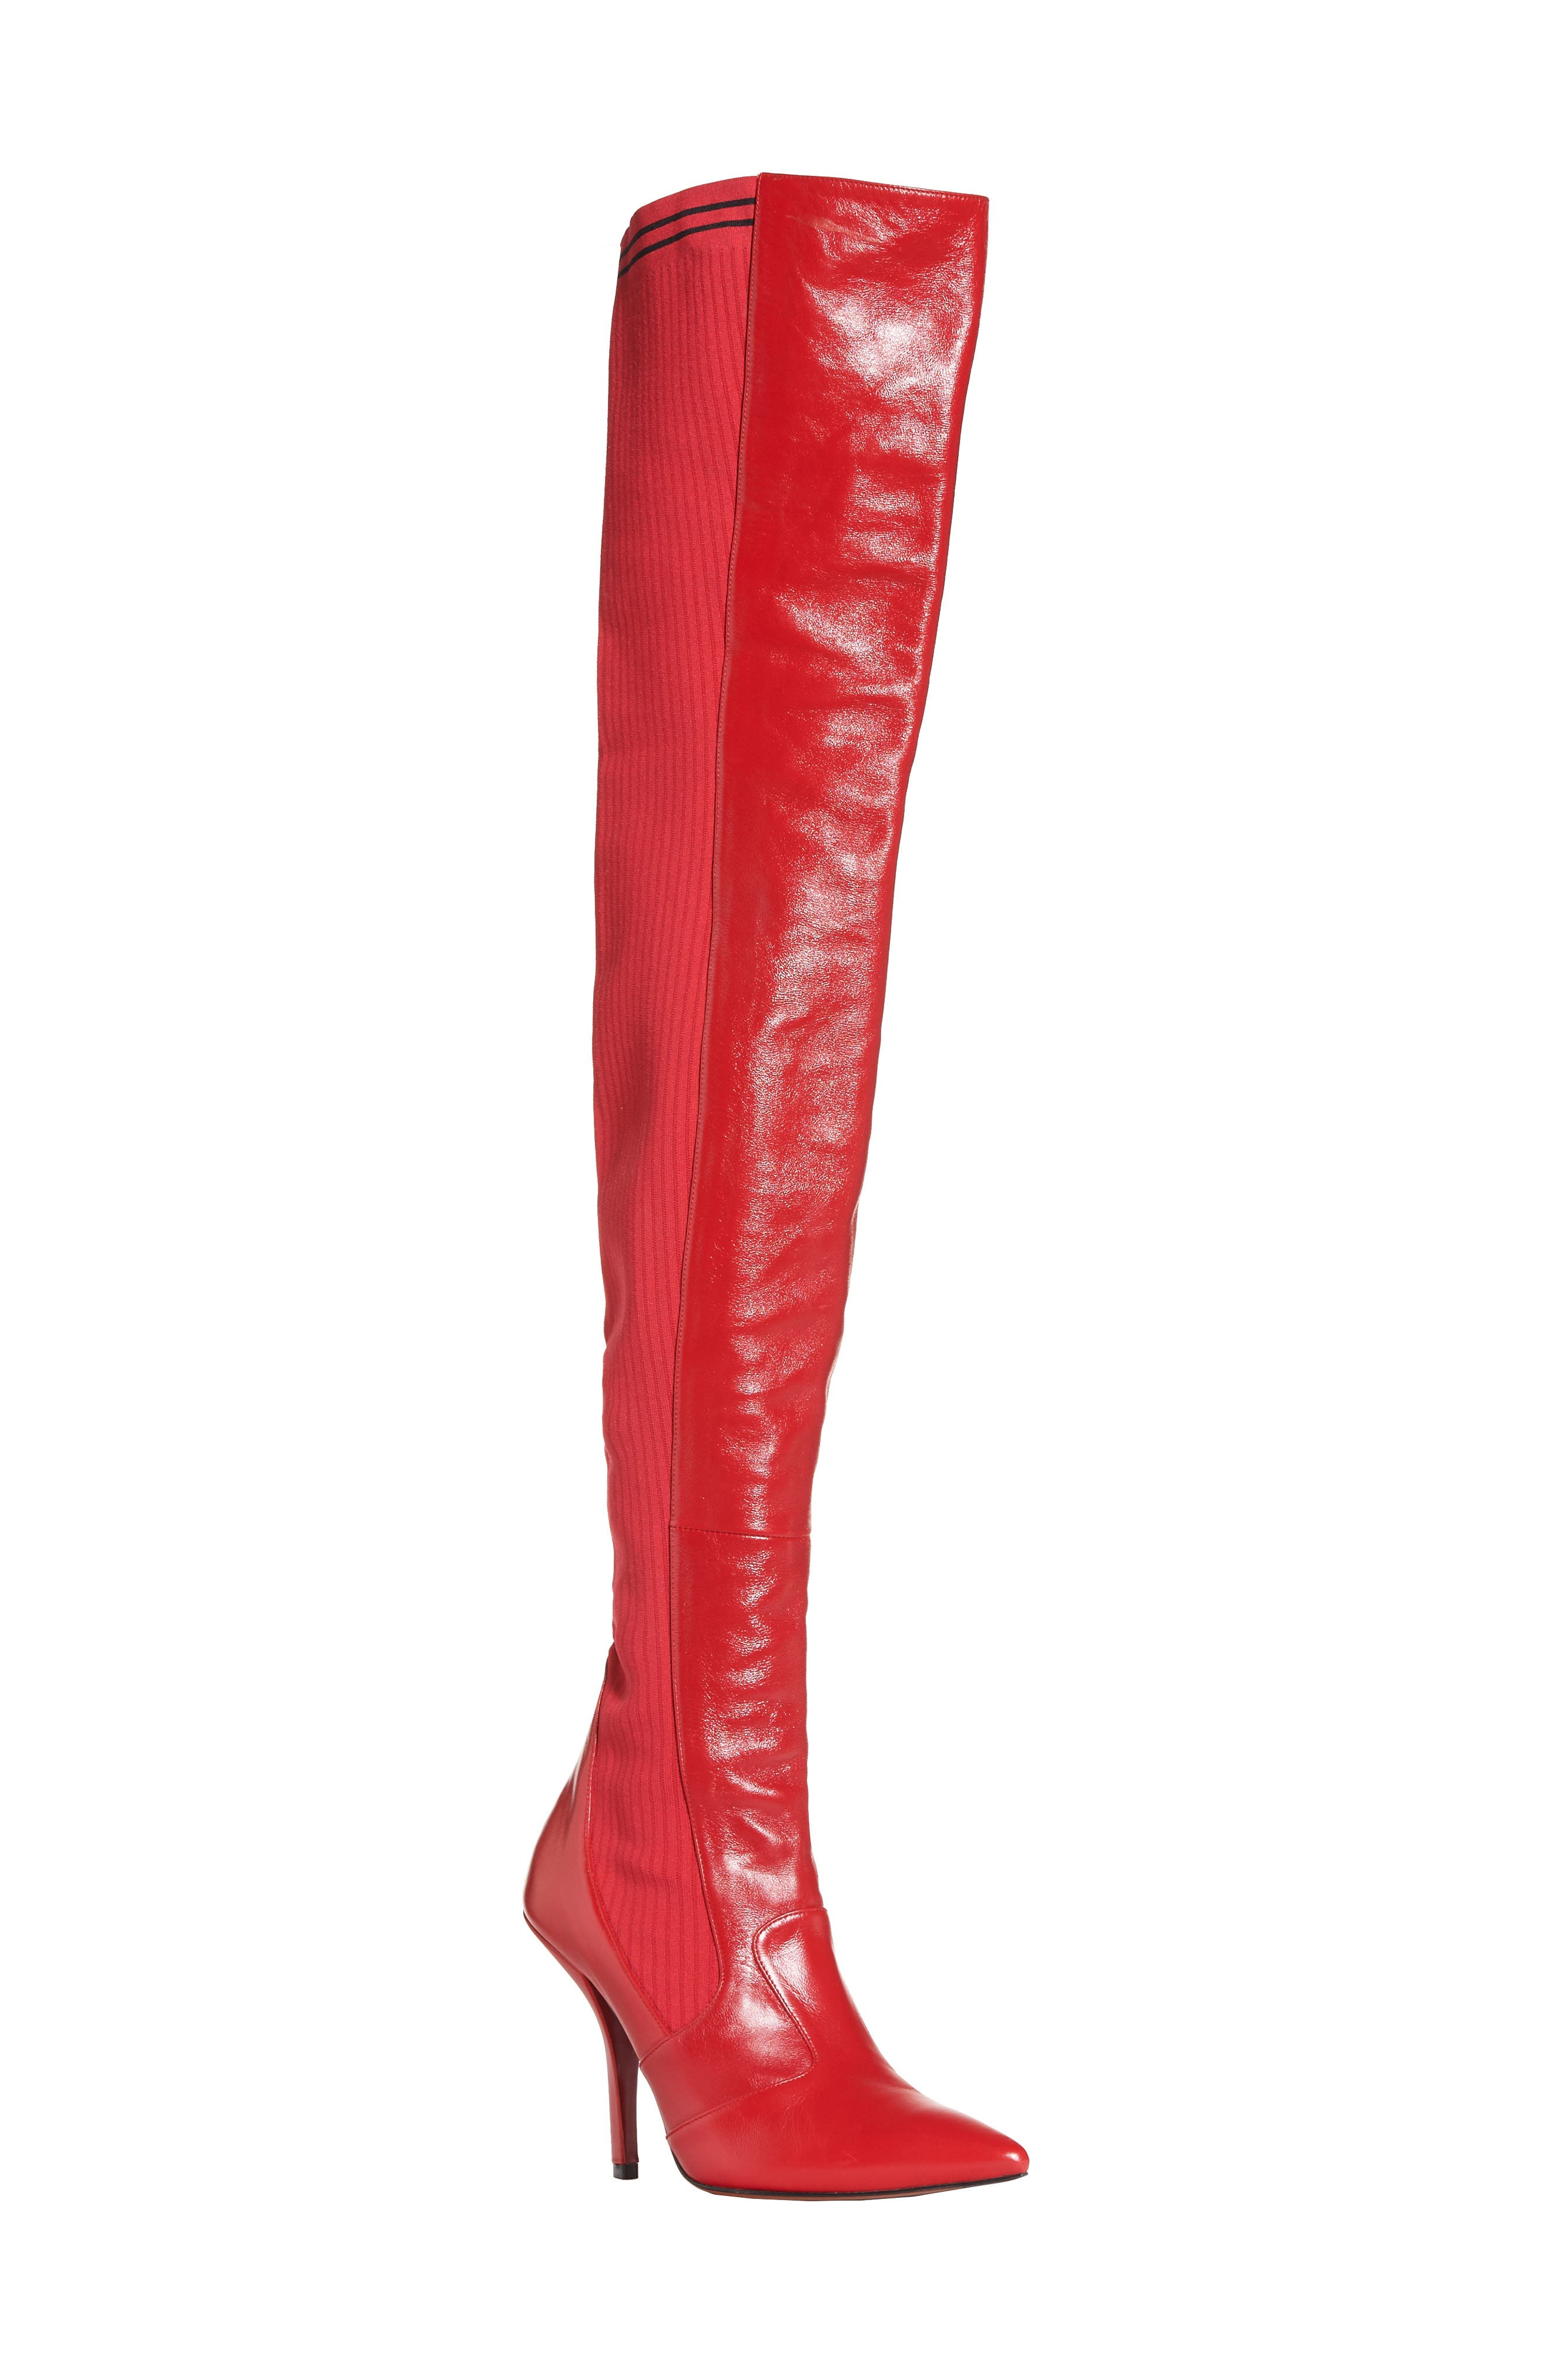 Rockoko Over the Knee Boot,                         Main,                         color, CHERRY LEATHER